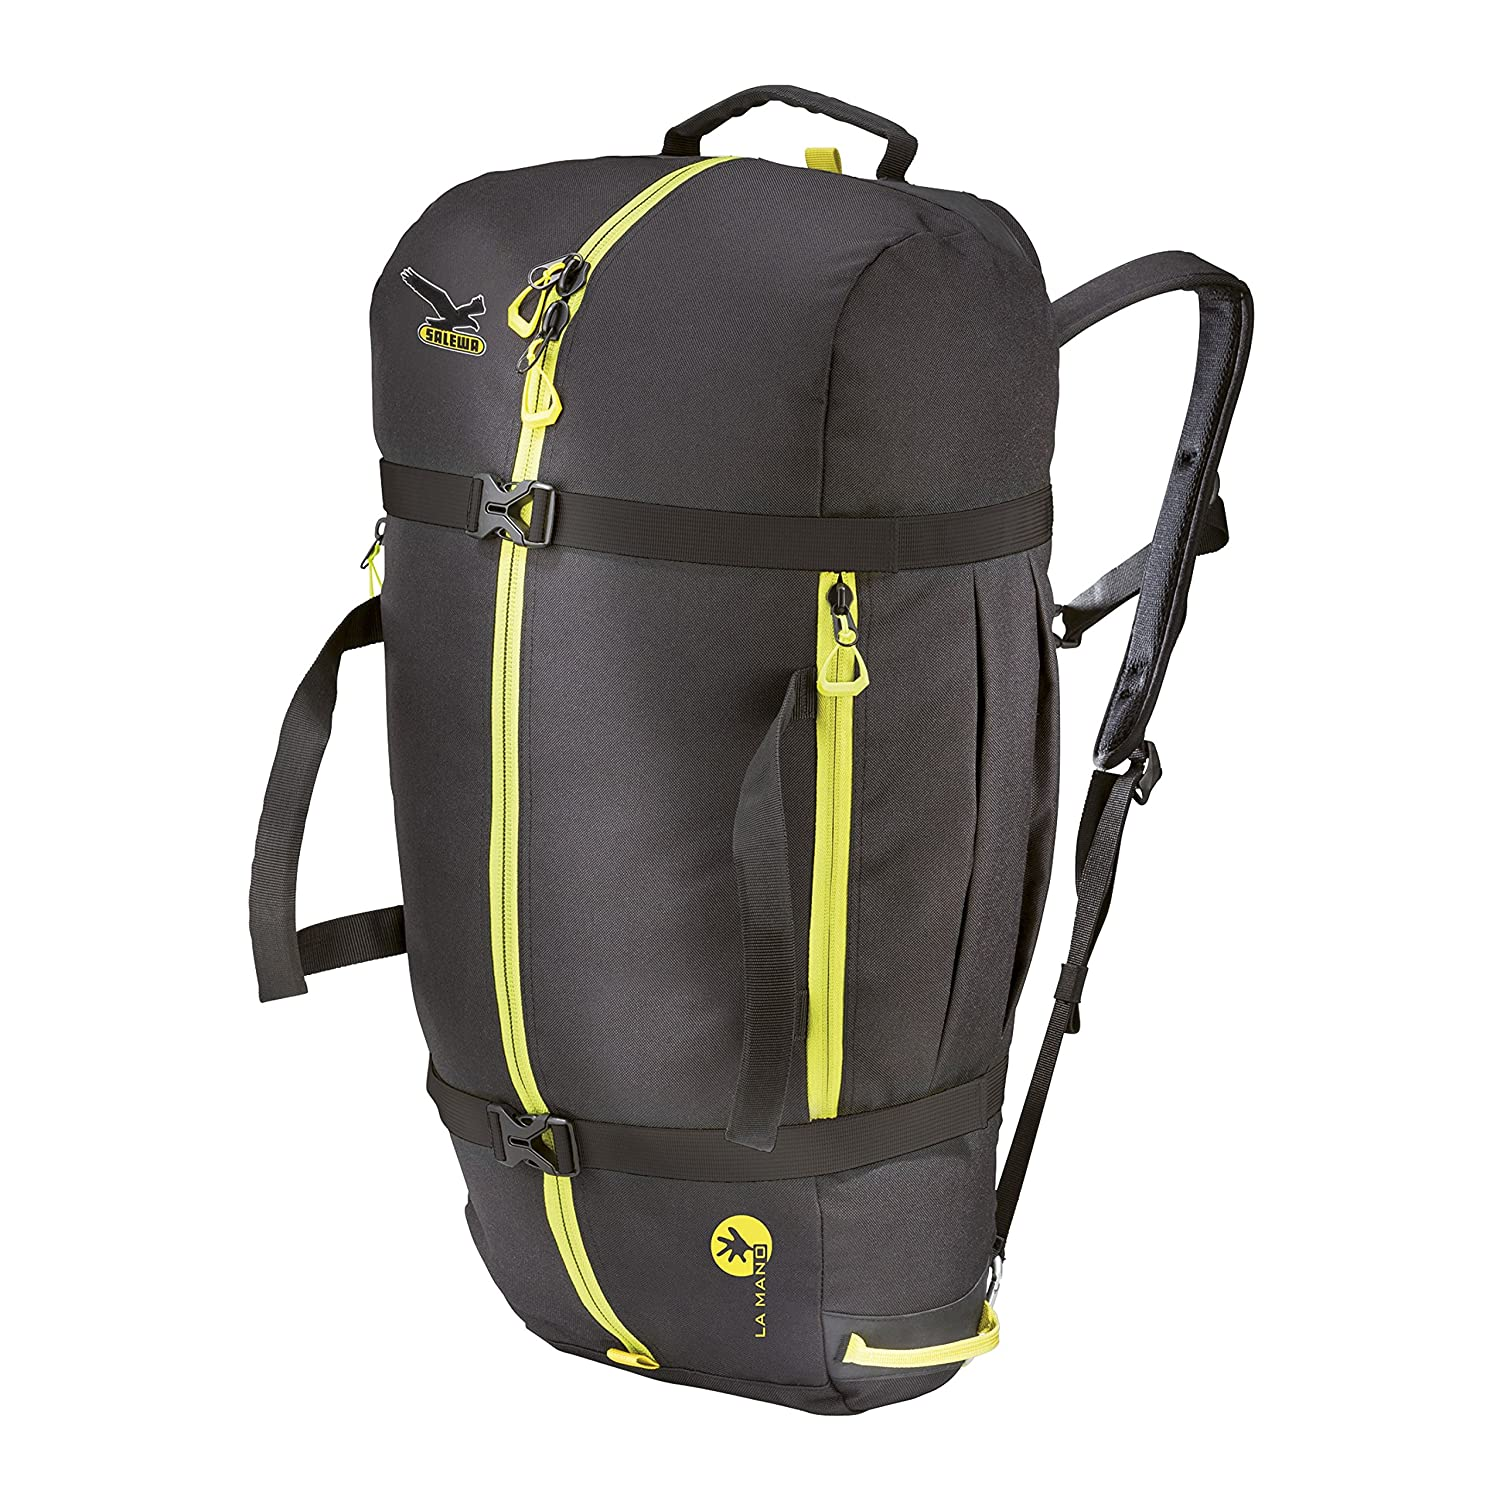 Salewa Rope Sack XI 00-0000004369 00-0000004369_91-UNI